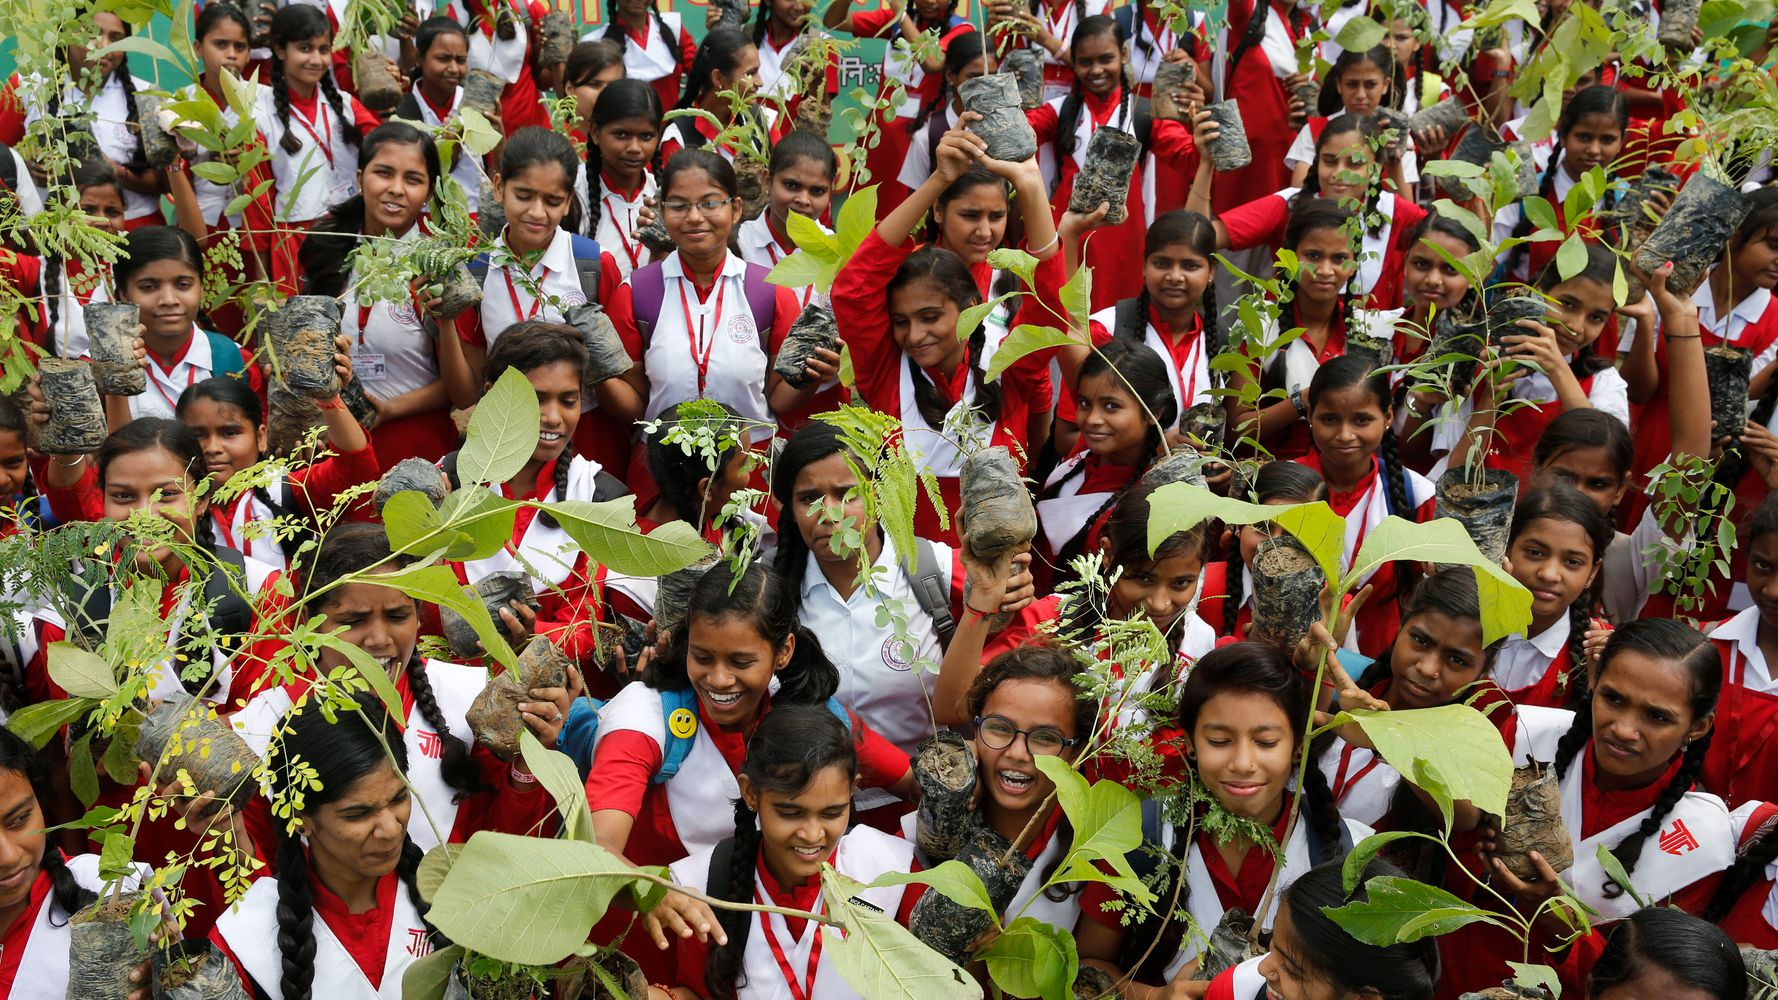 Westlake Legal Group 5d501fdc240000a945937eaa Indians Plant 220 Million Trees In A Single Day